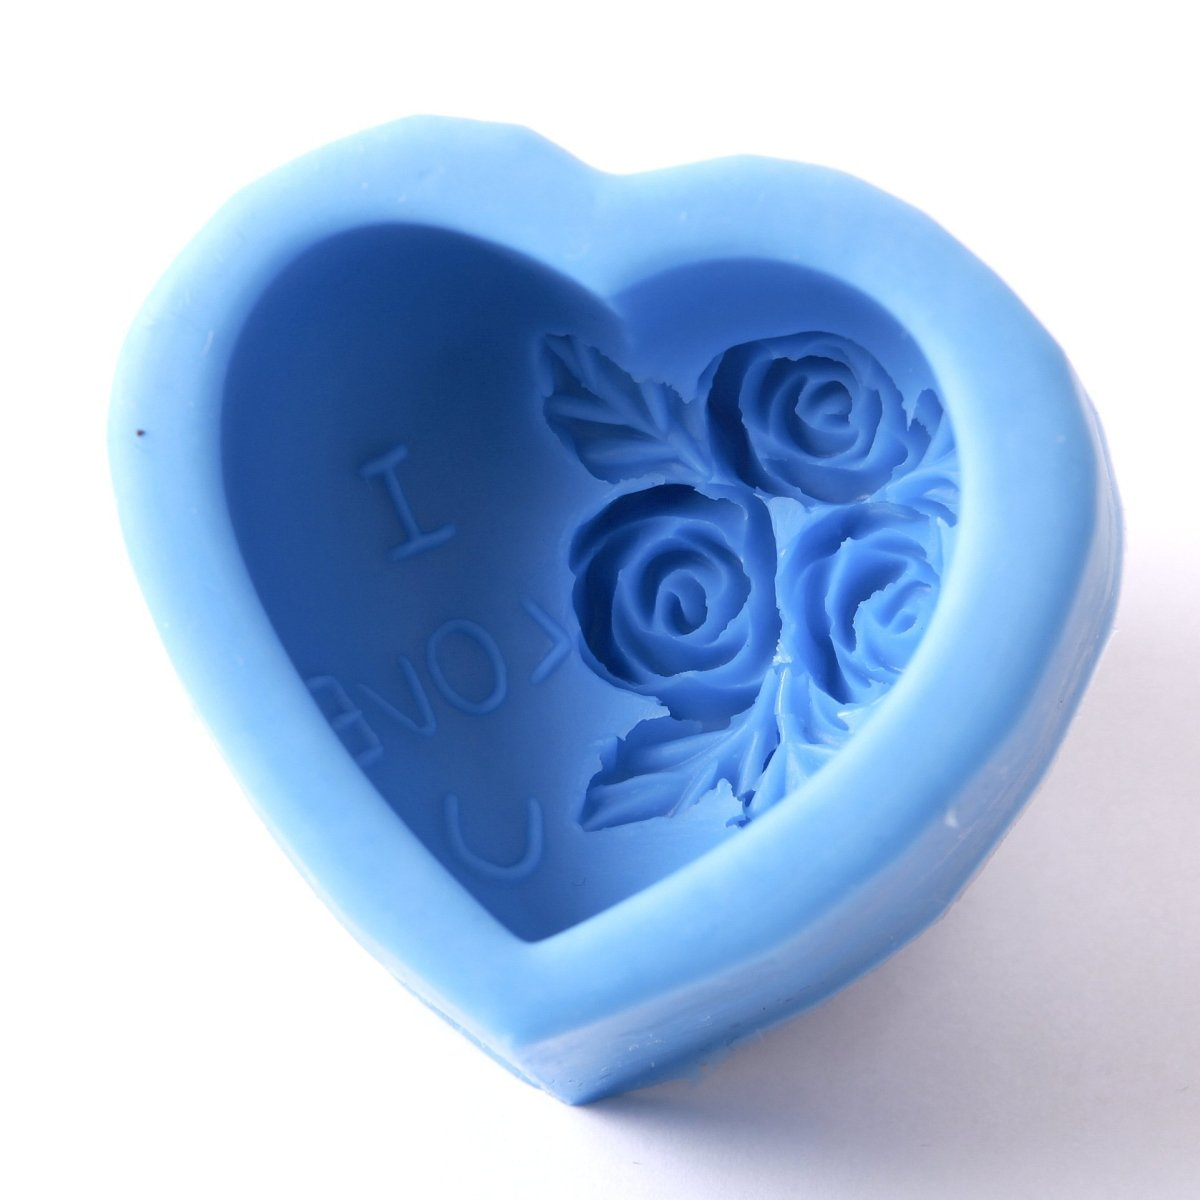 Heart With Roses Silicone Soap Mould R0227 - Mystic Moments UK